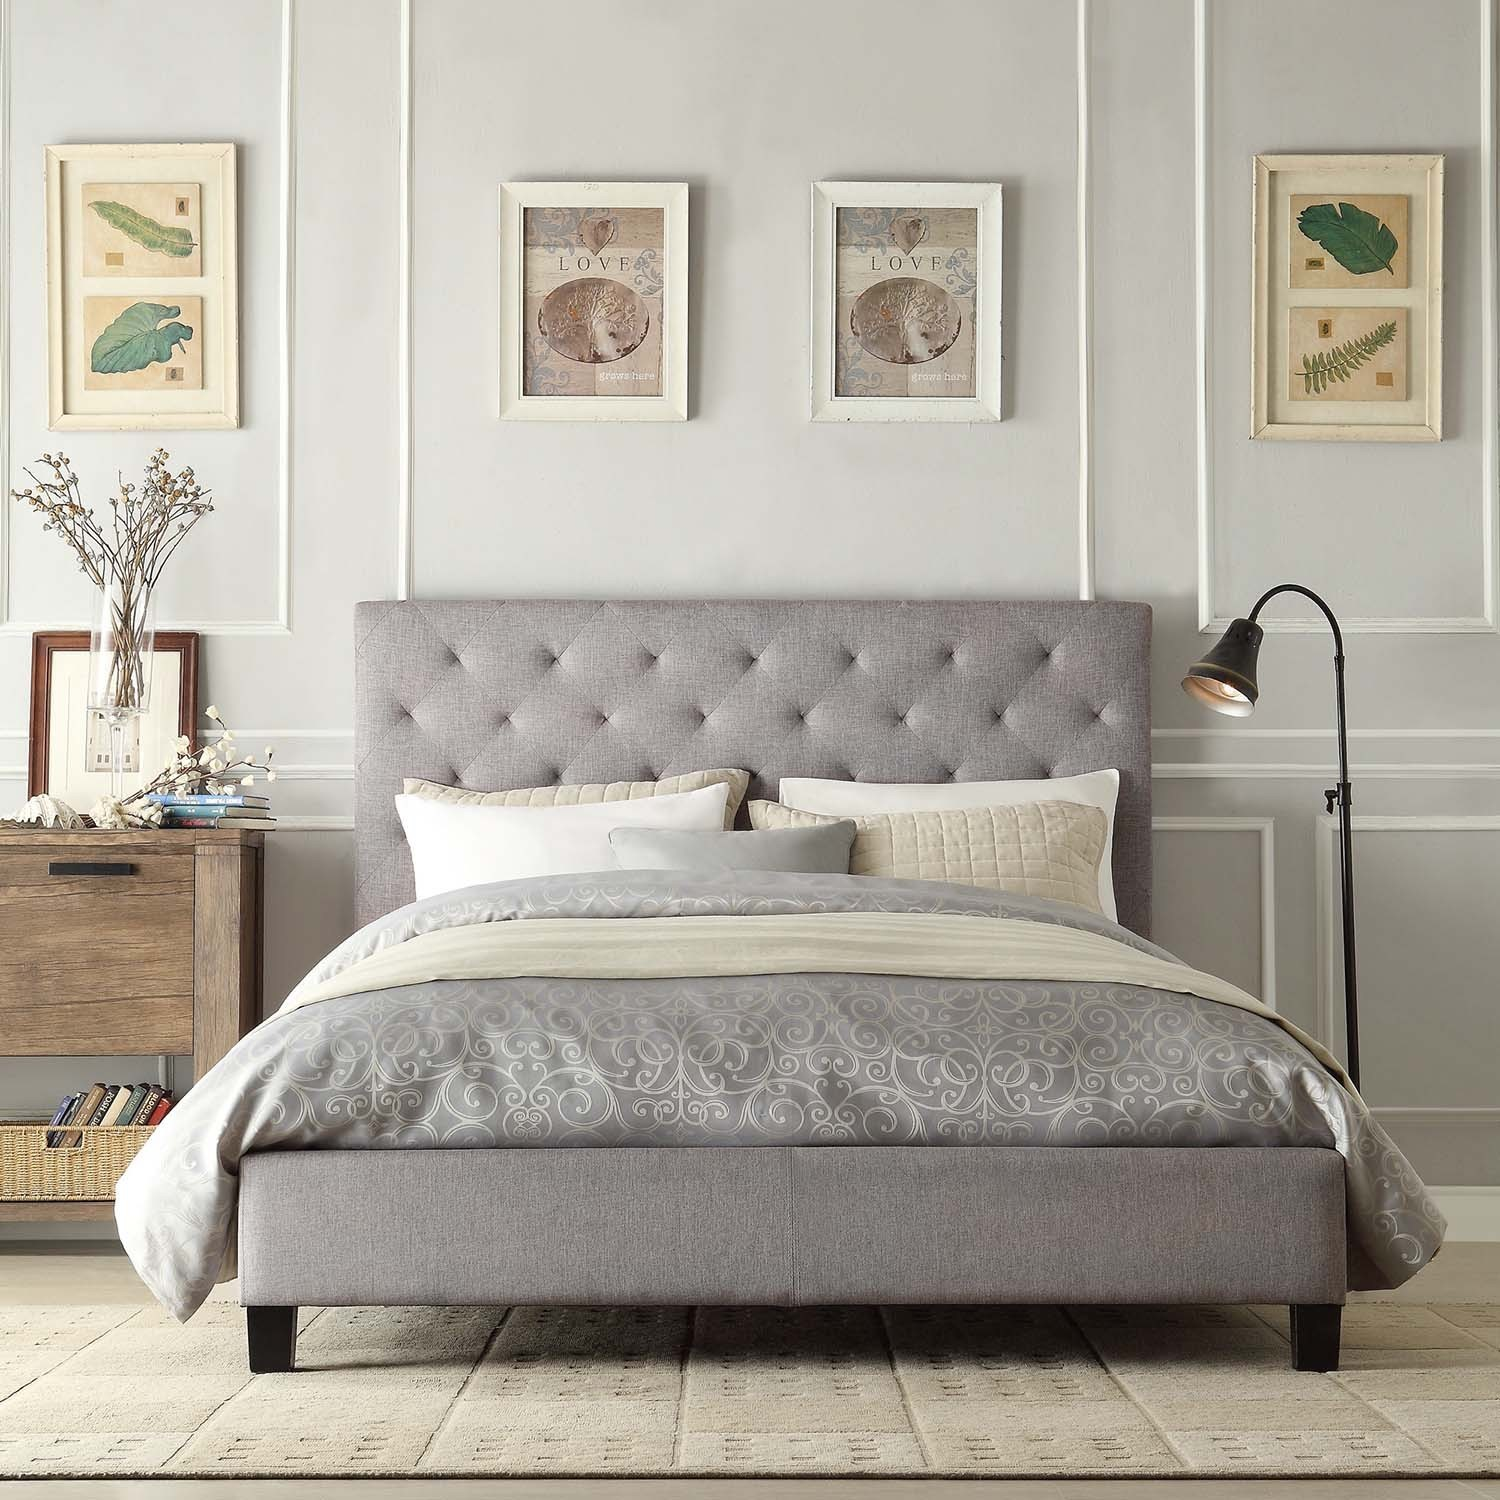 king-size-upholstered-headboards-on-bedroom-ideas-upholstered-headboard-king-how-to-upholster-a-headboard-with-buttons-upholstered-headboard-how-to-make-an-upholstered-headboard-with.jpg